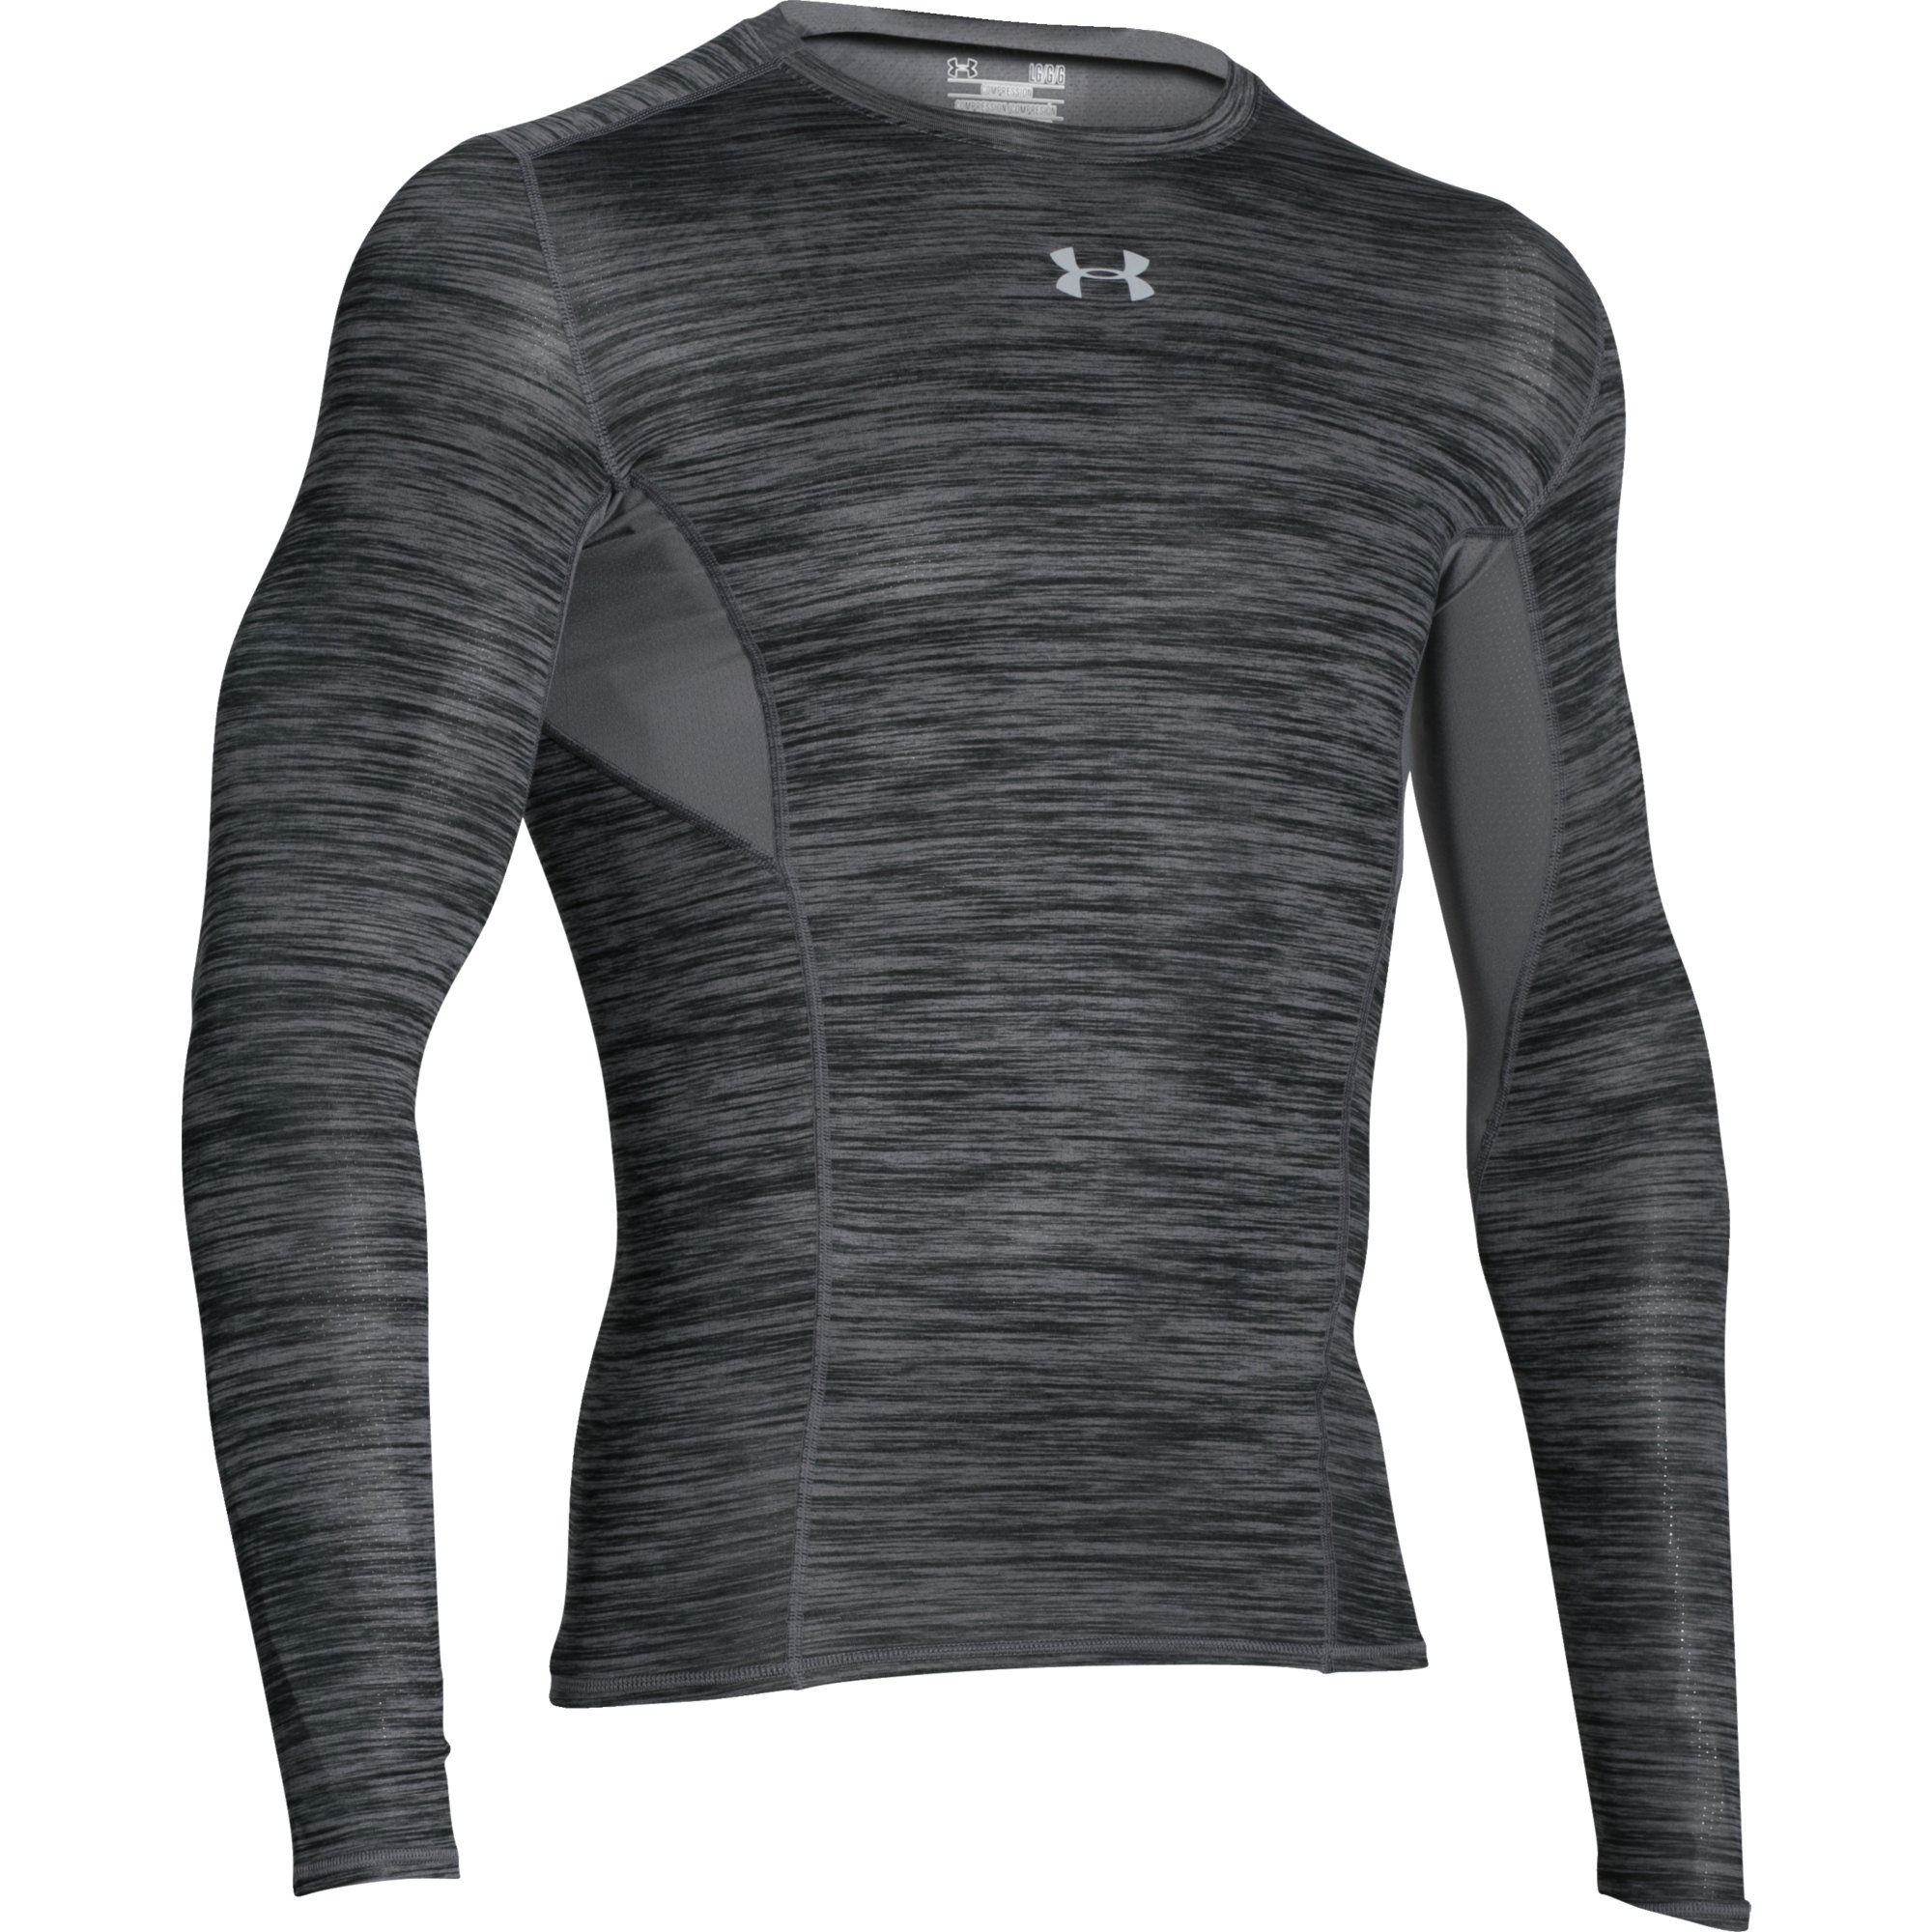 Wiggle Under Armour Coolswitch Long Sleeve Compression